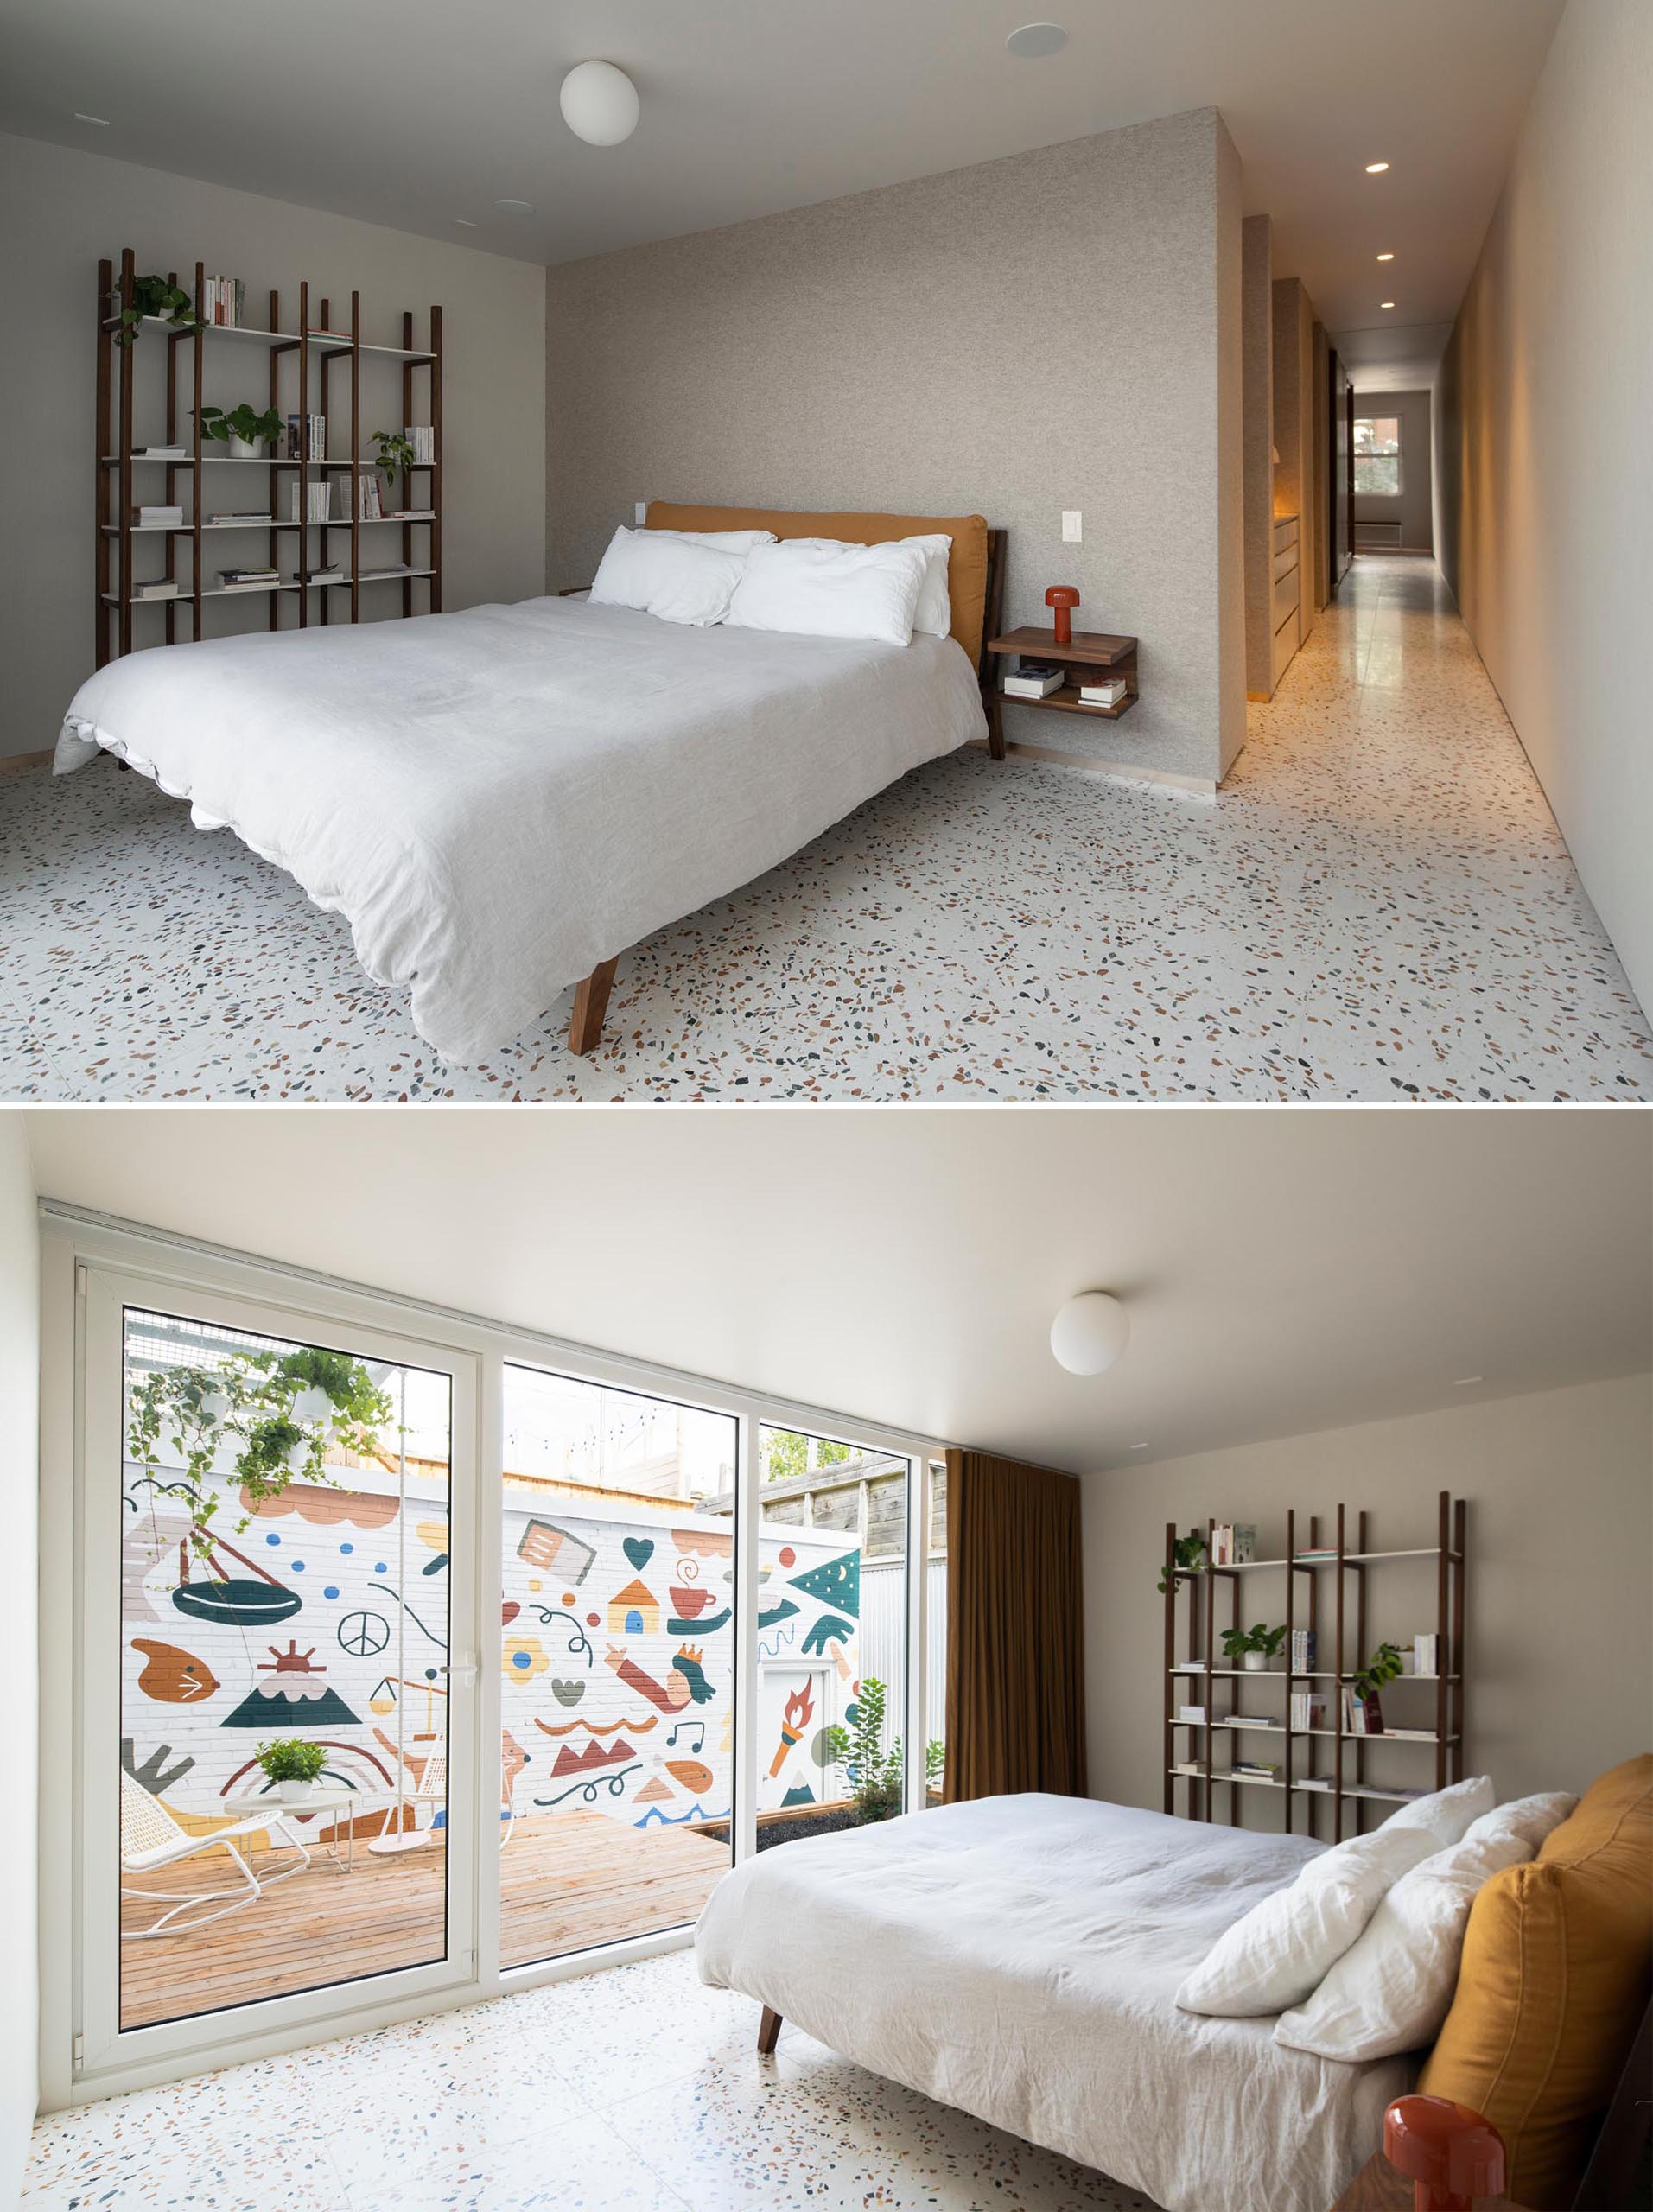 Terrazzo tile floors flow through to this modern master bedroom, that features minimal furnishings and a glass door that opens to a private courtyard with fun and colorful mural